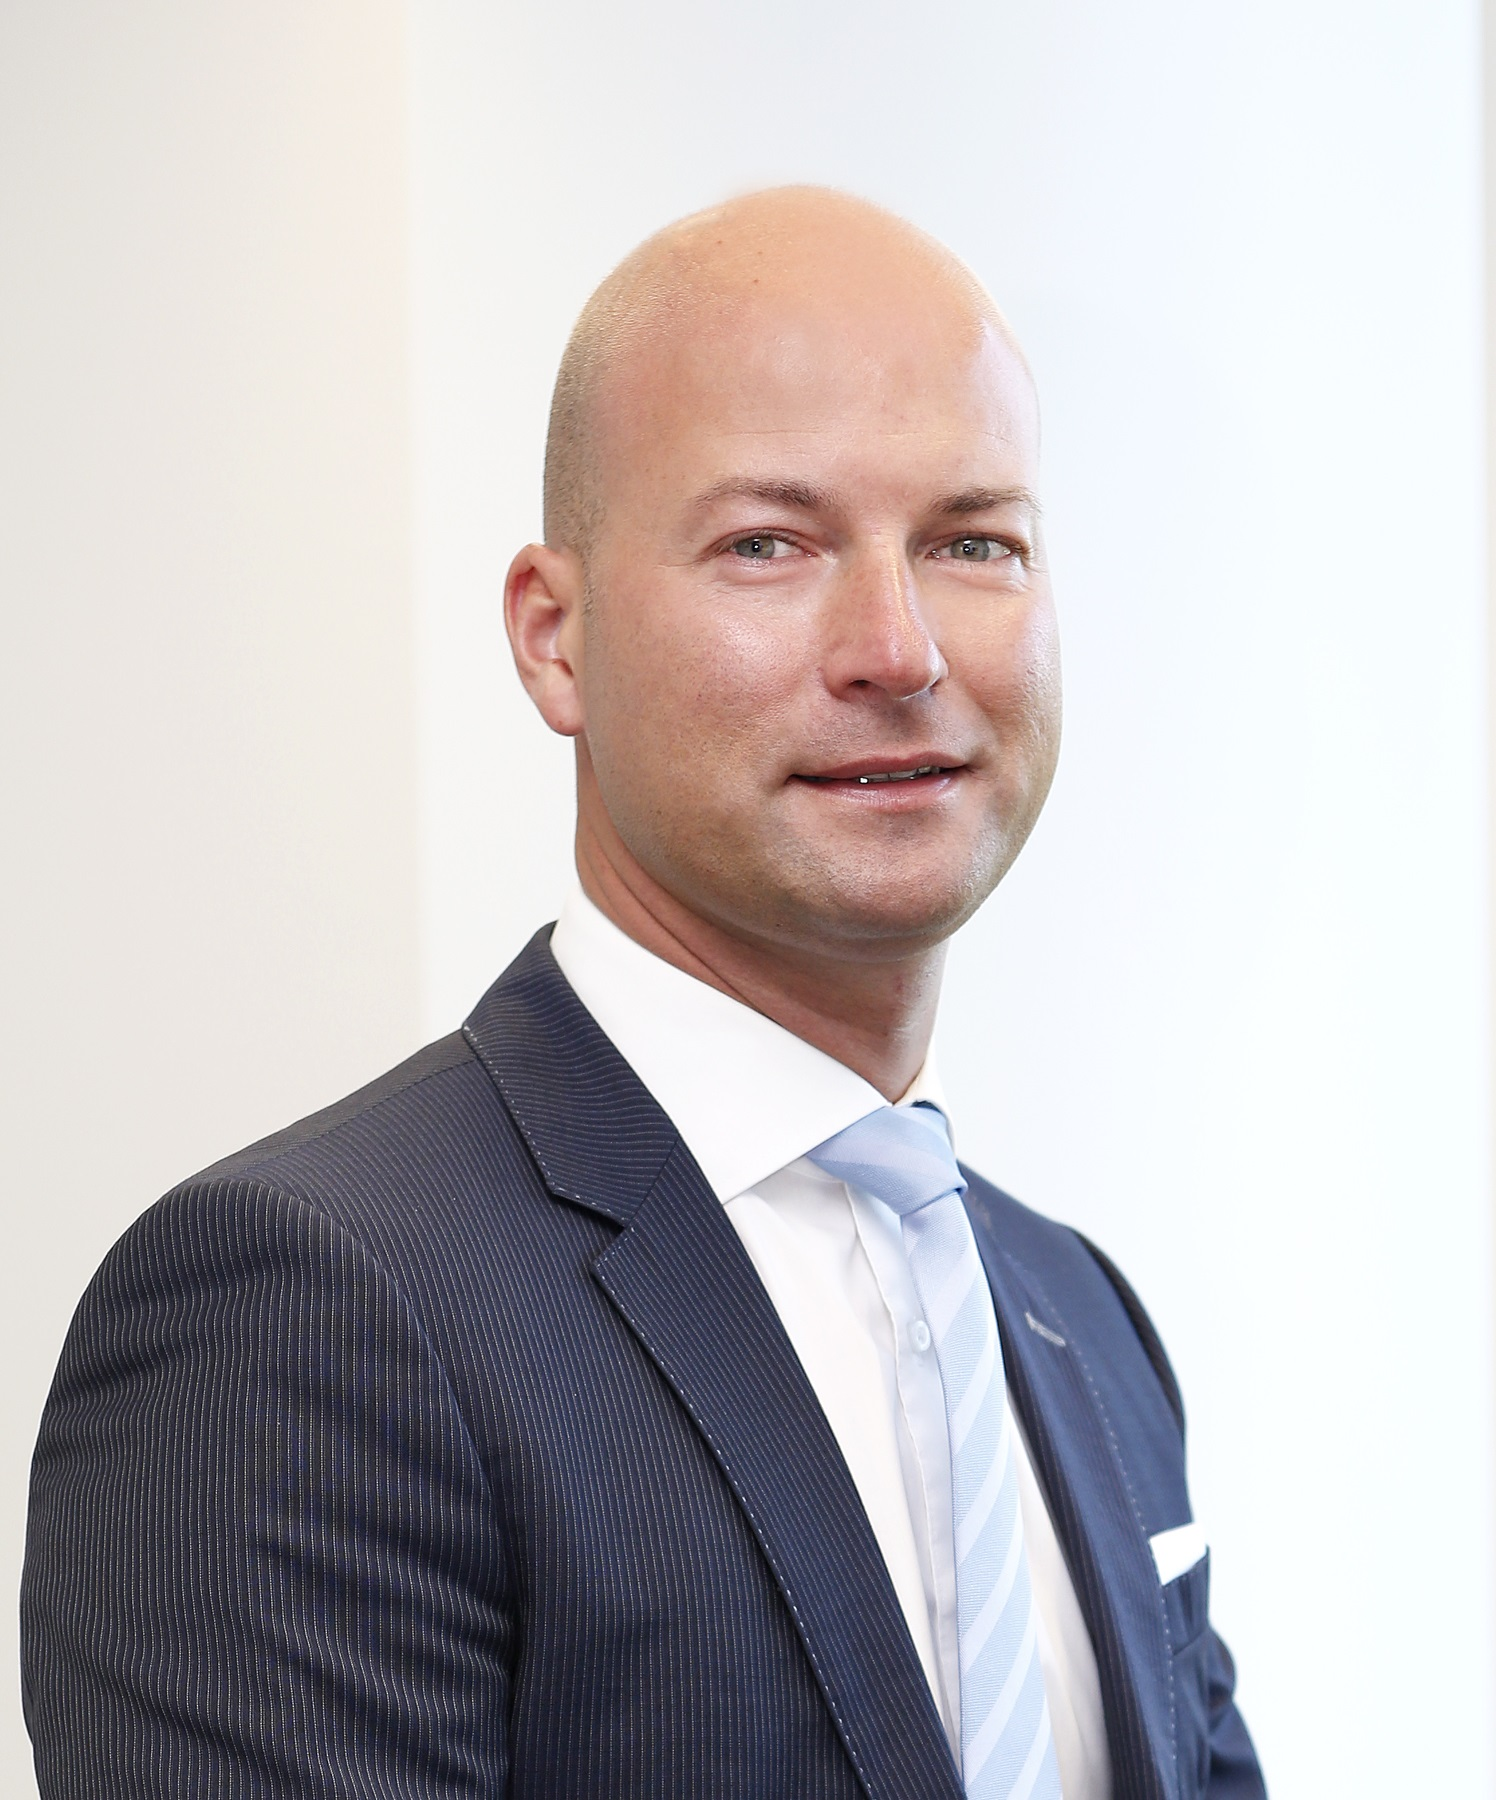 Expert profile image of Olivier Noel, Chief Operating Officer of Northern Trust Global Services SE -